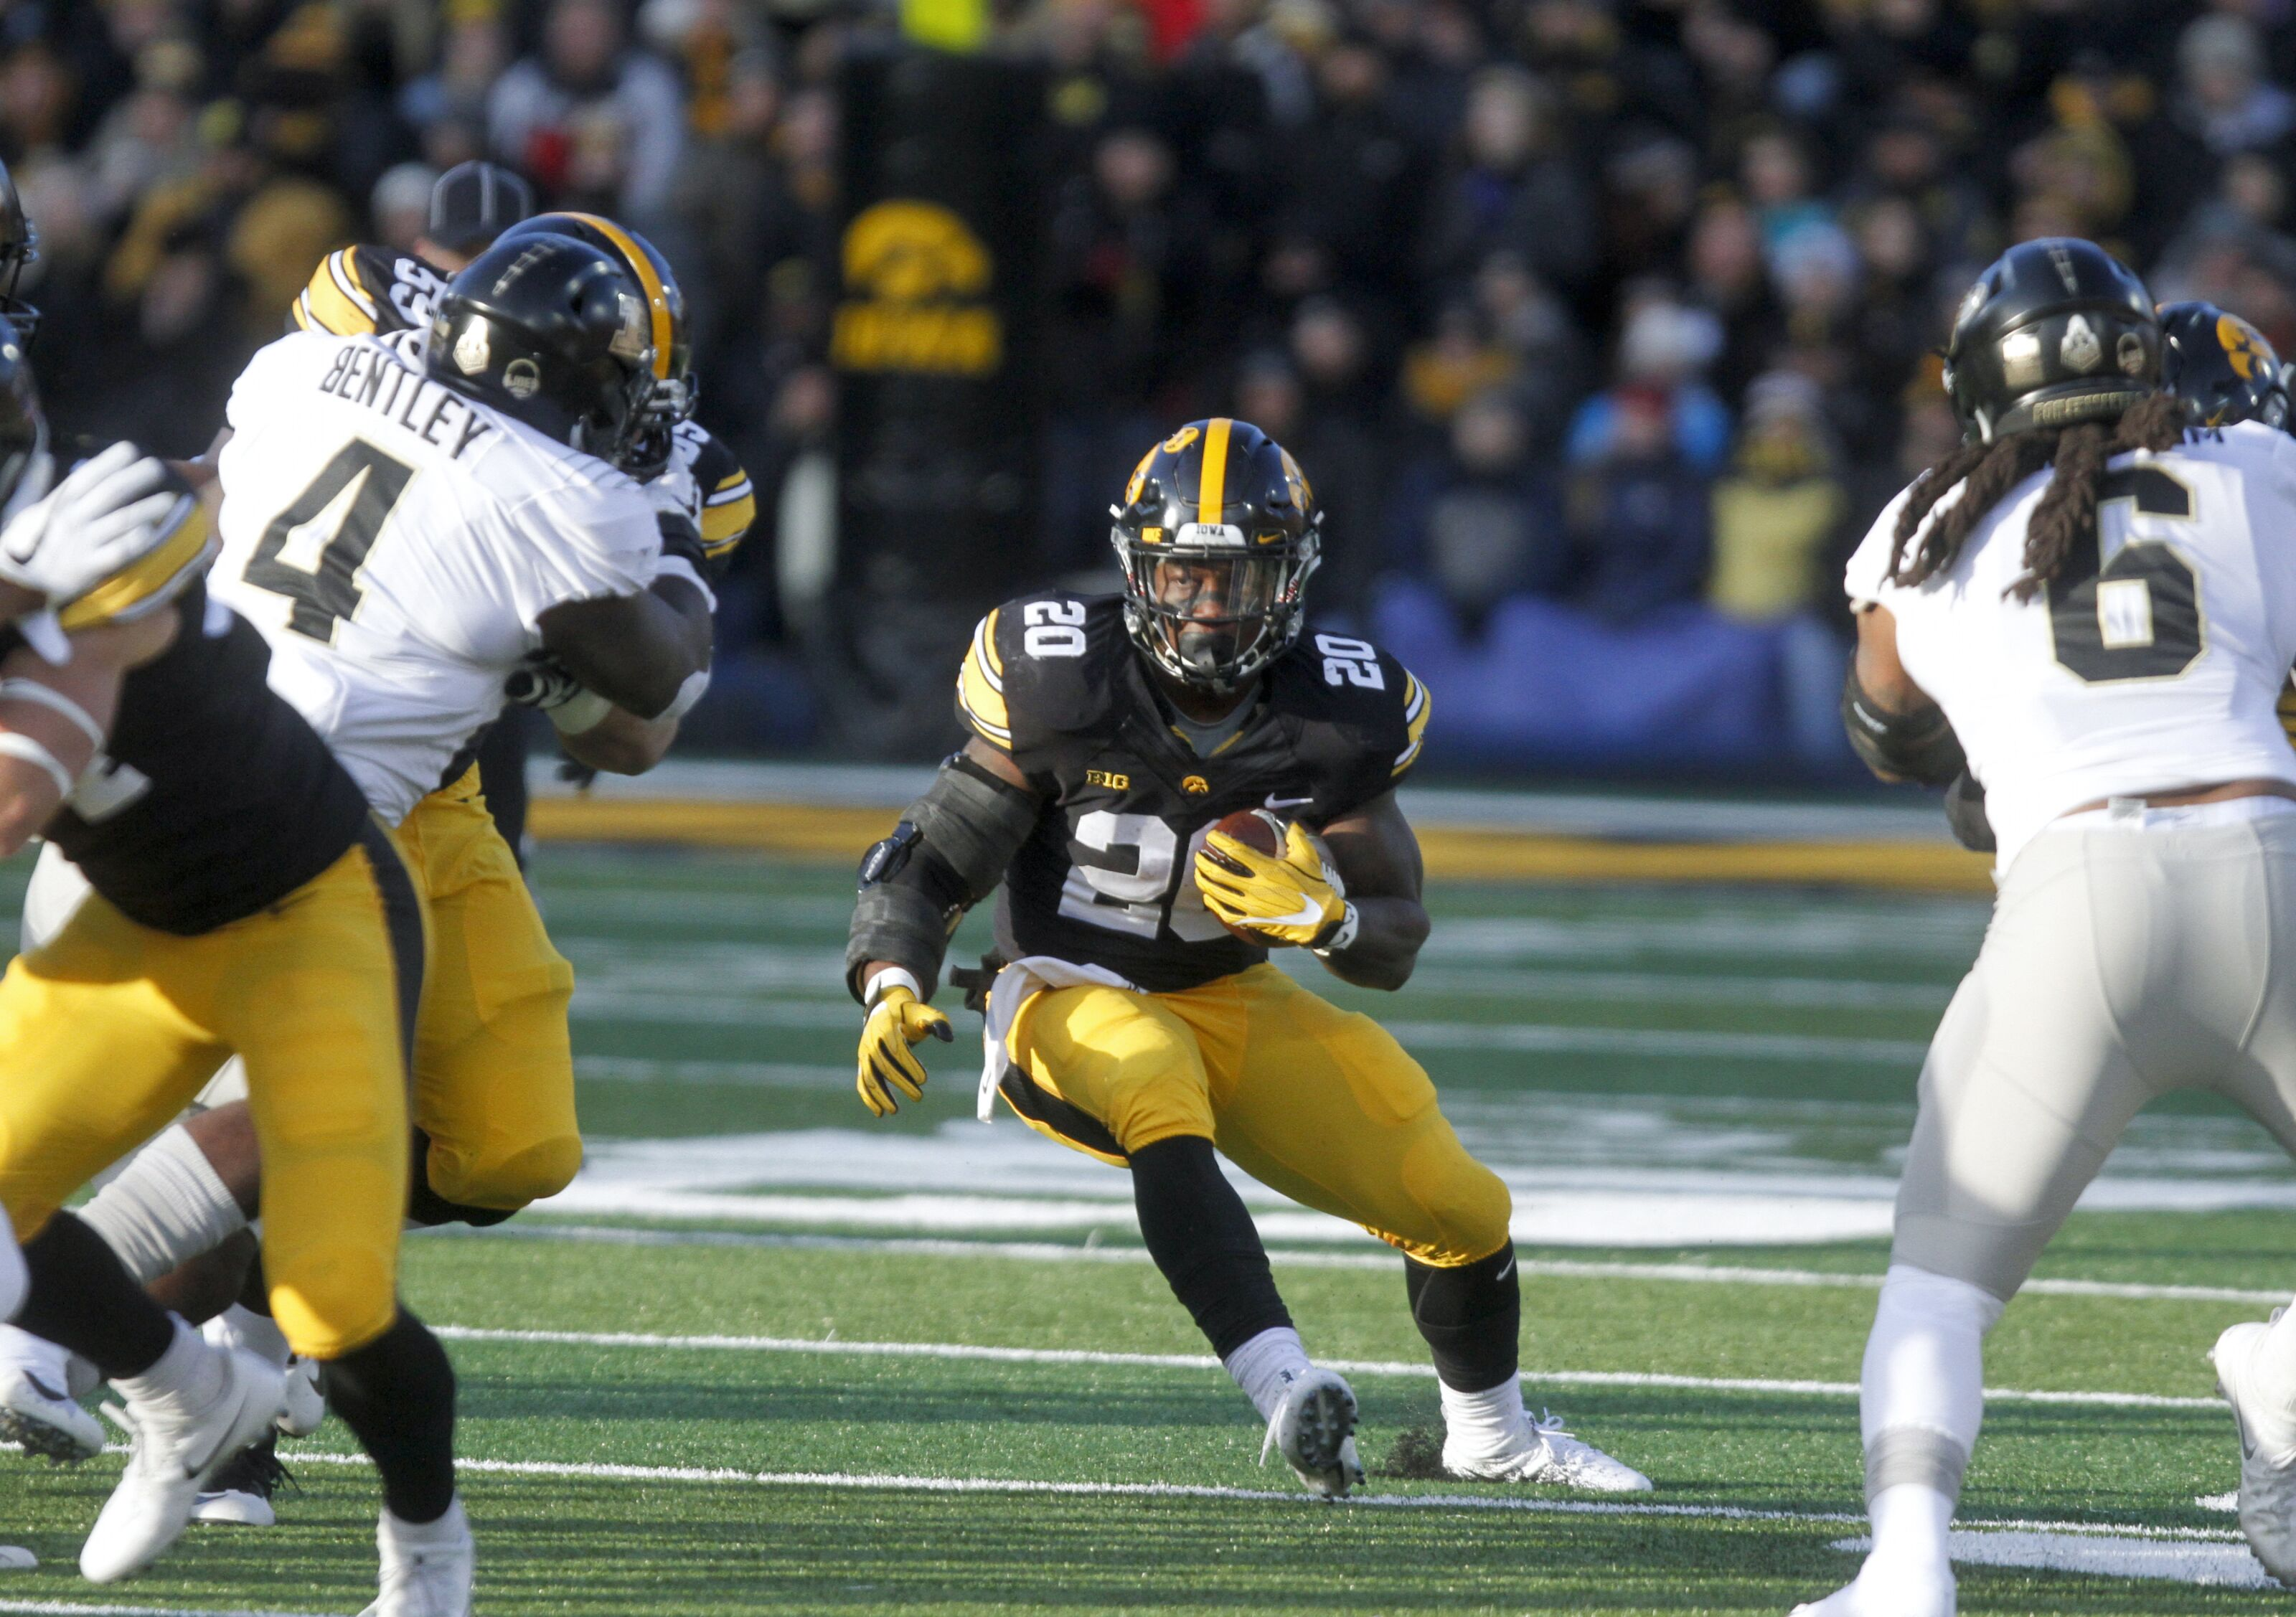 Iowa football: James Butler making most of opportunity with Raiders